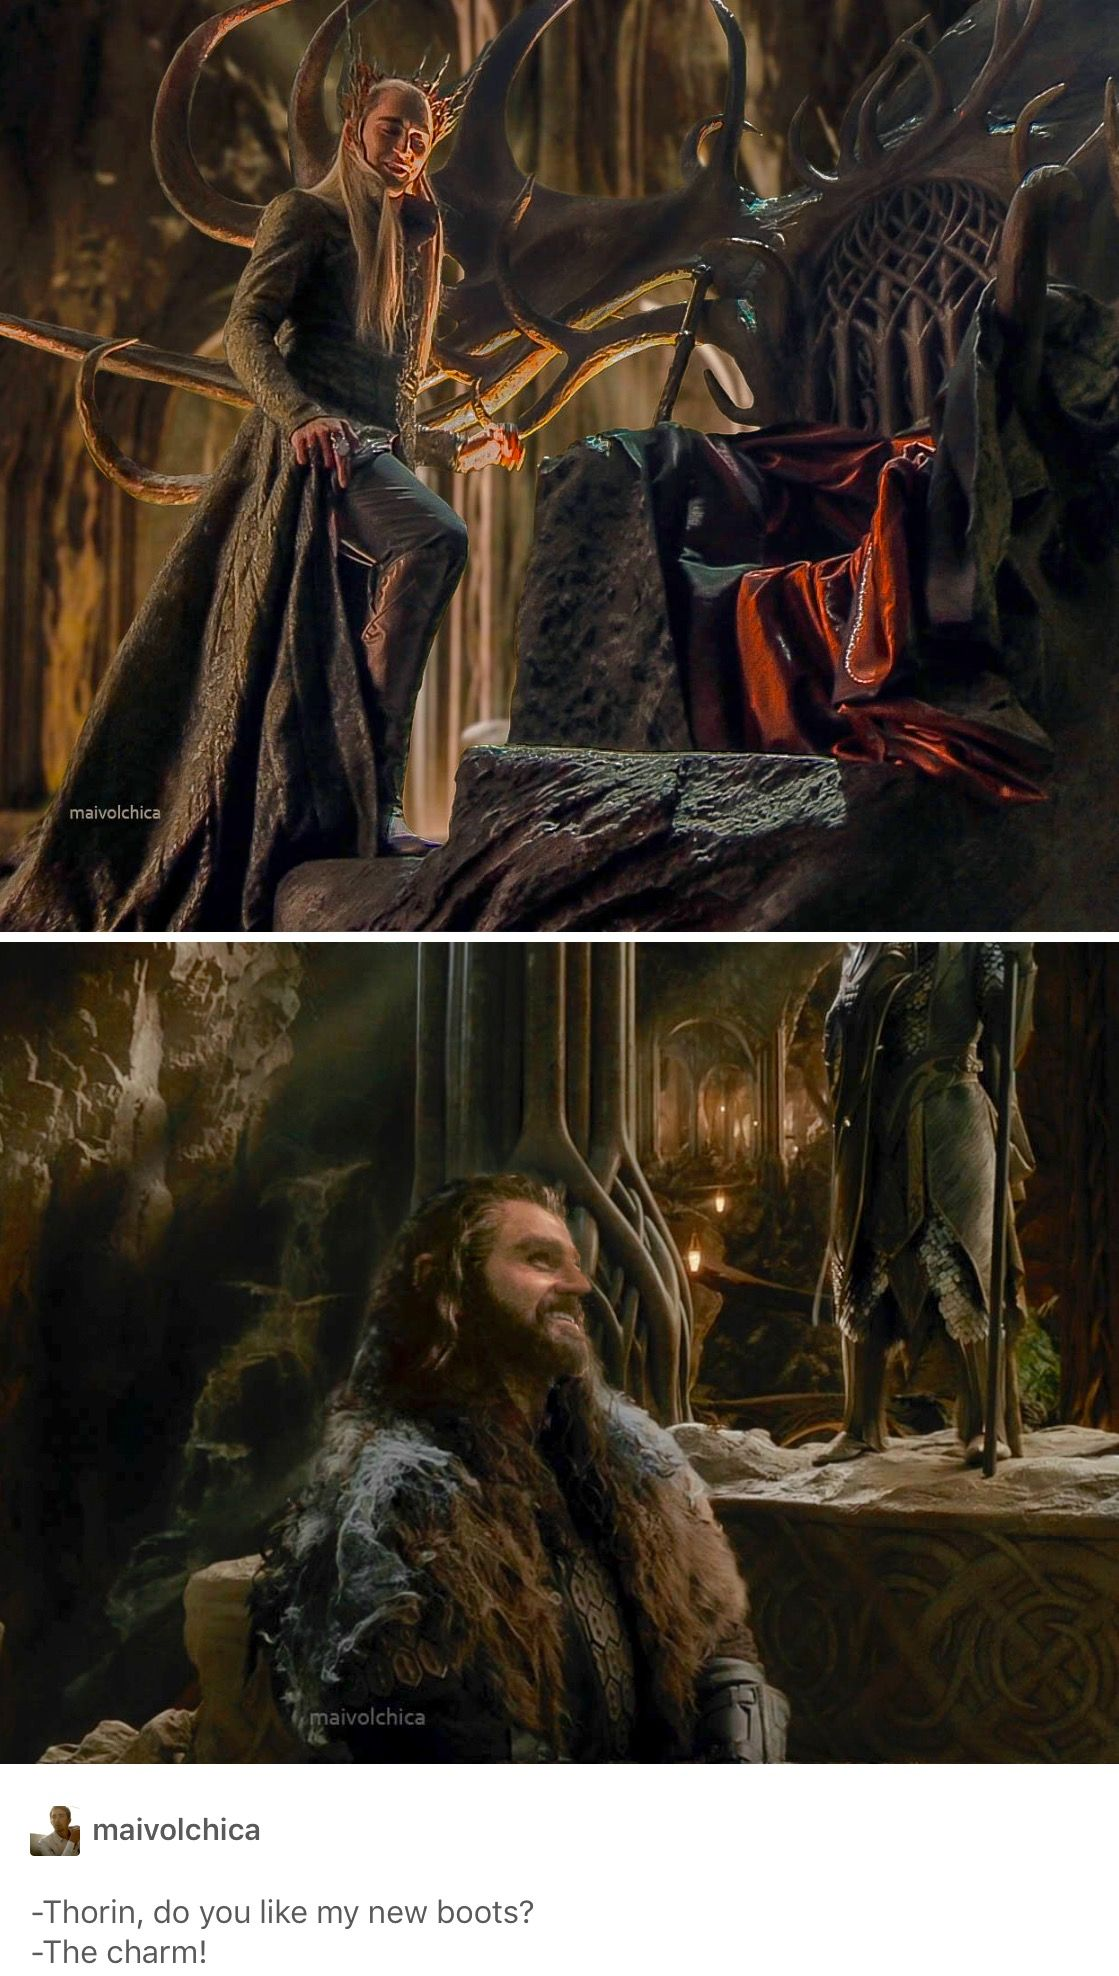 Prince Thorin (lovingly and smiling) looking up to King Thranduill: must be bts.